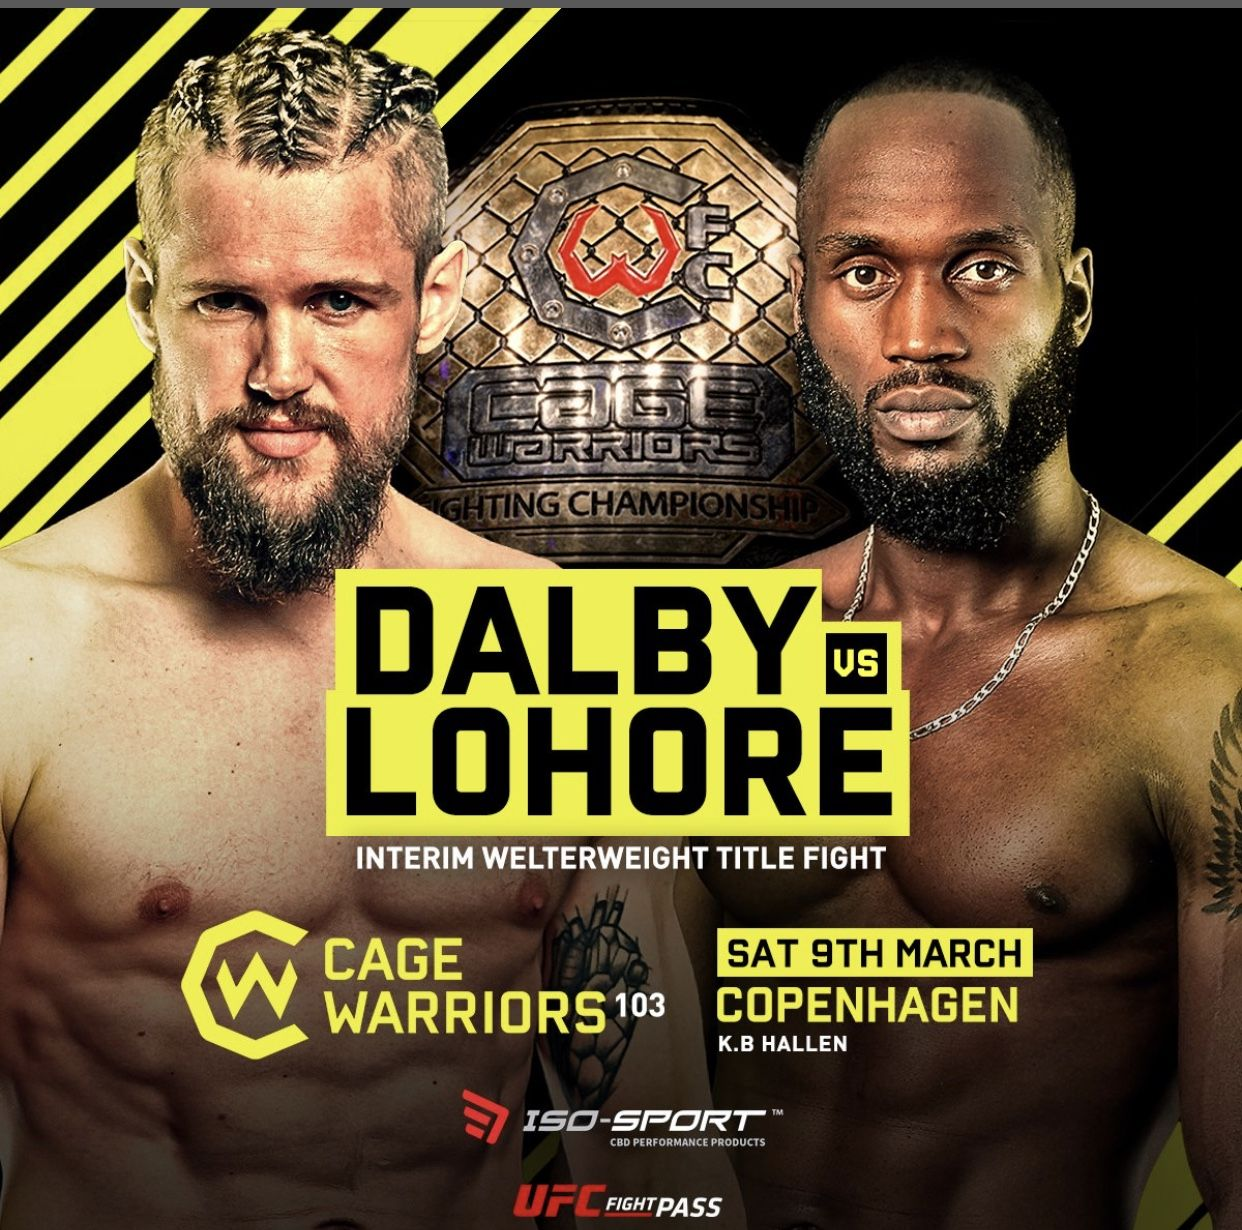 Cage Warriors 103 live results